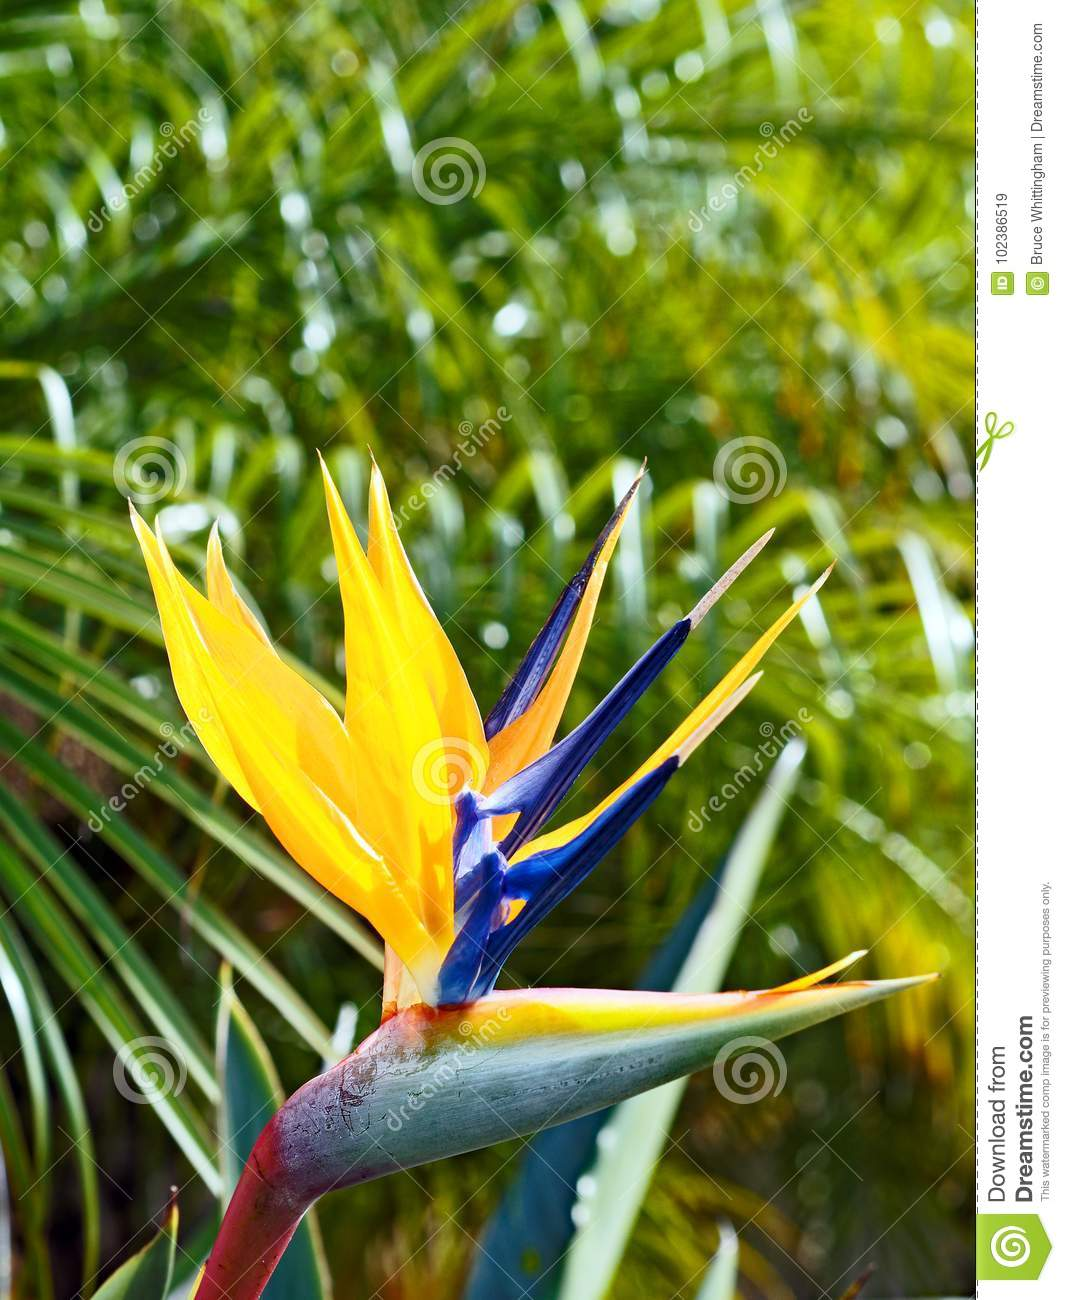 Colourful Bird of Paradise Flower